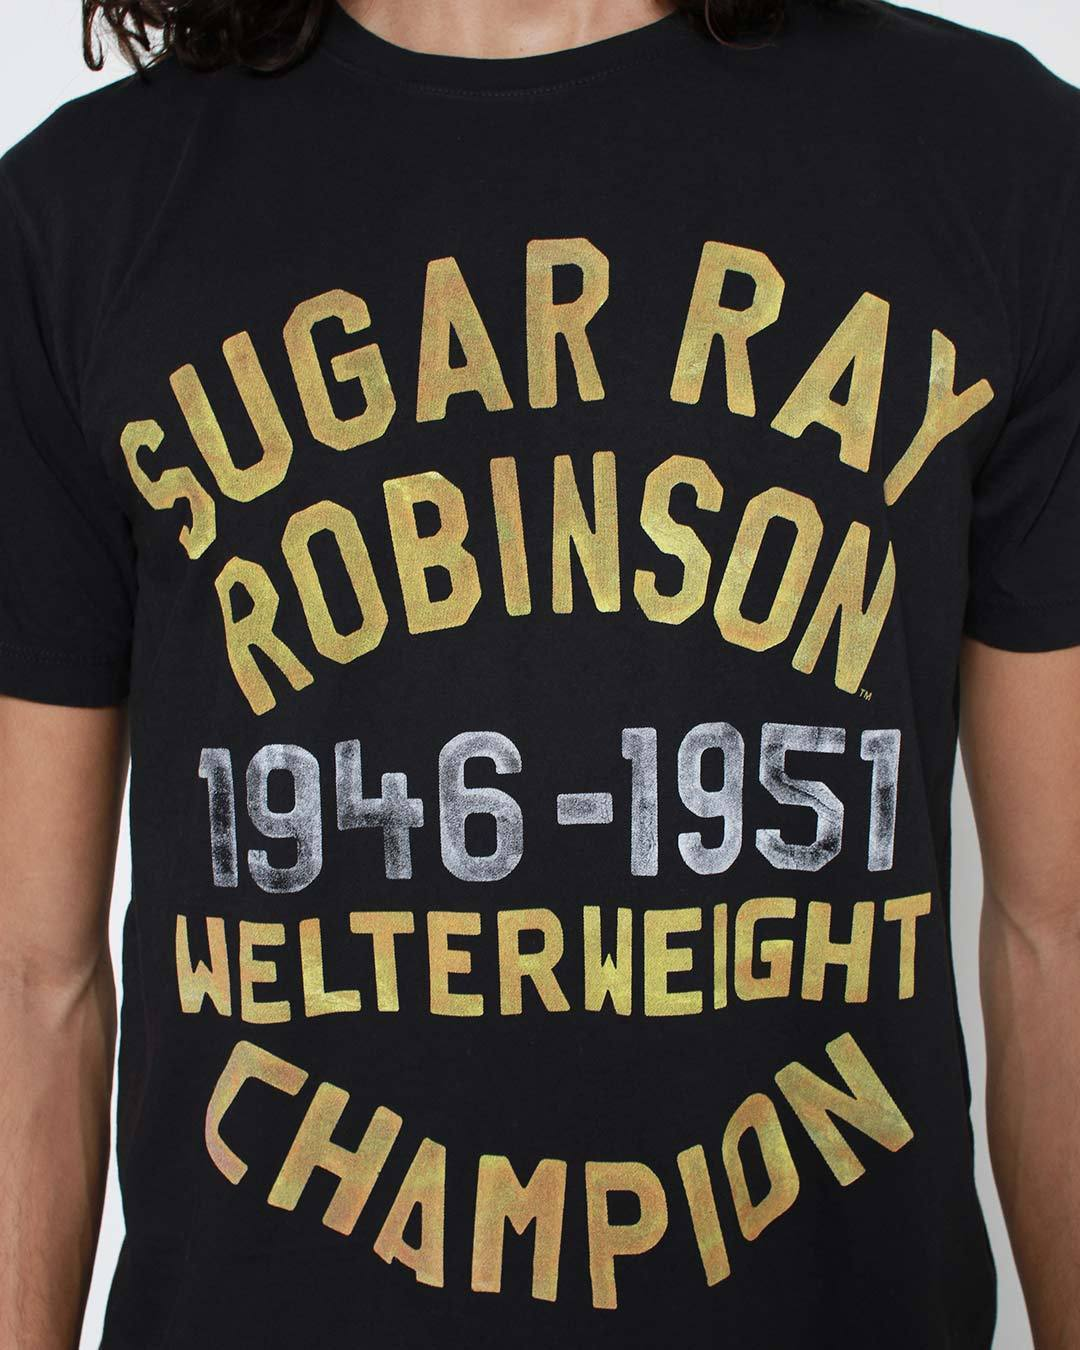 Sugar Ray Robinson Welterweight Champ Tee - Roots of Inc dba Roots of Fight